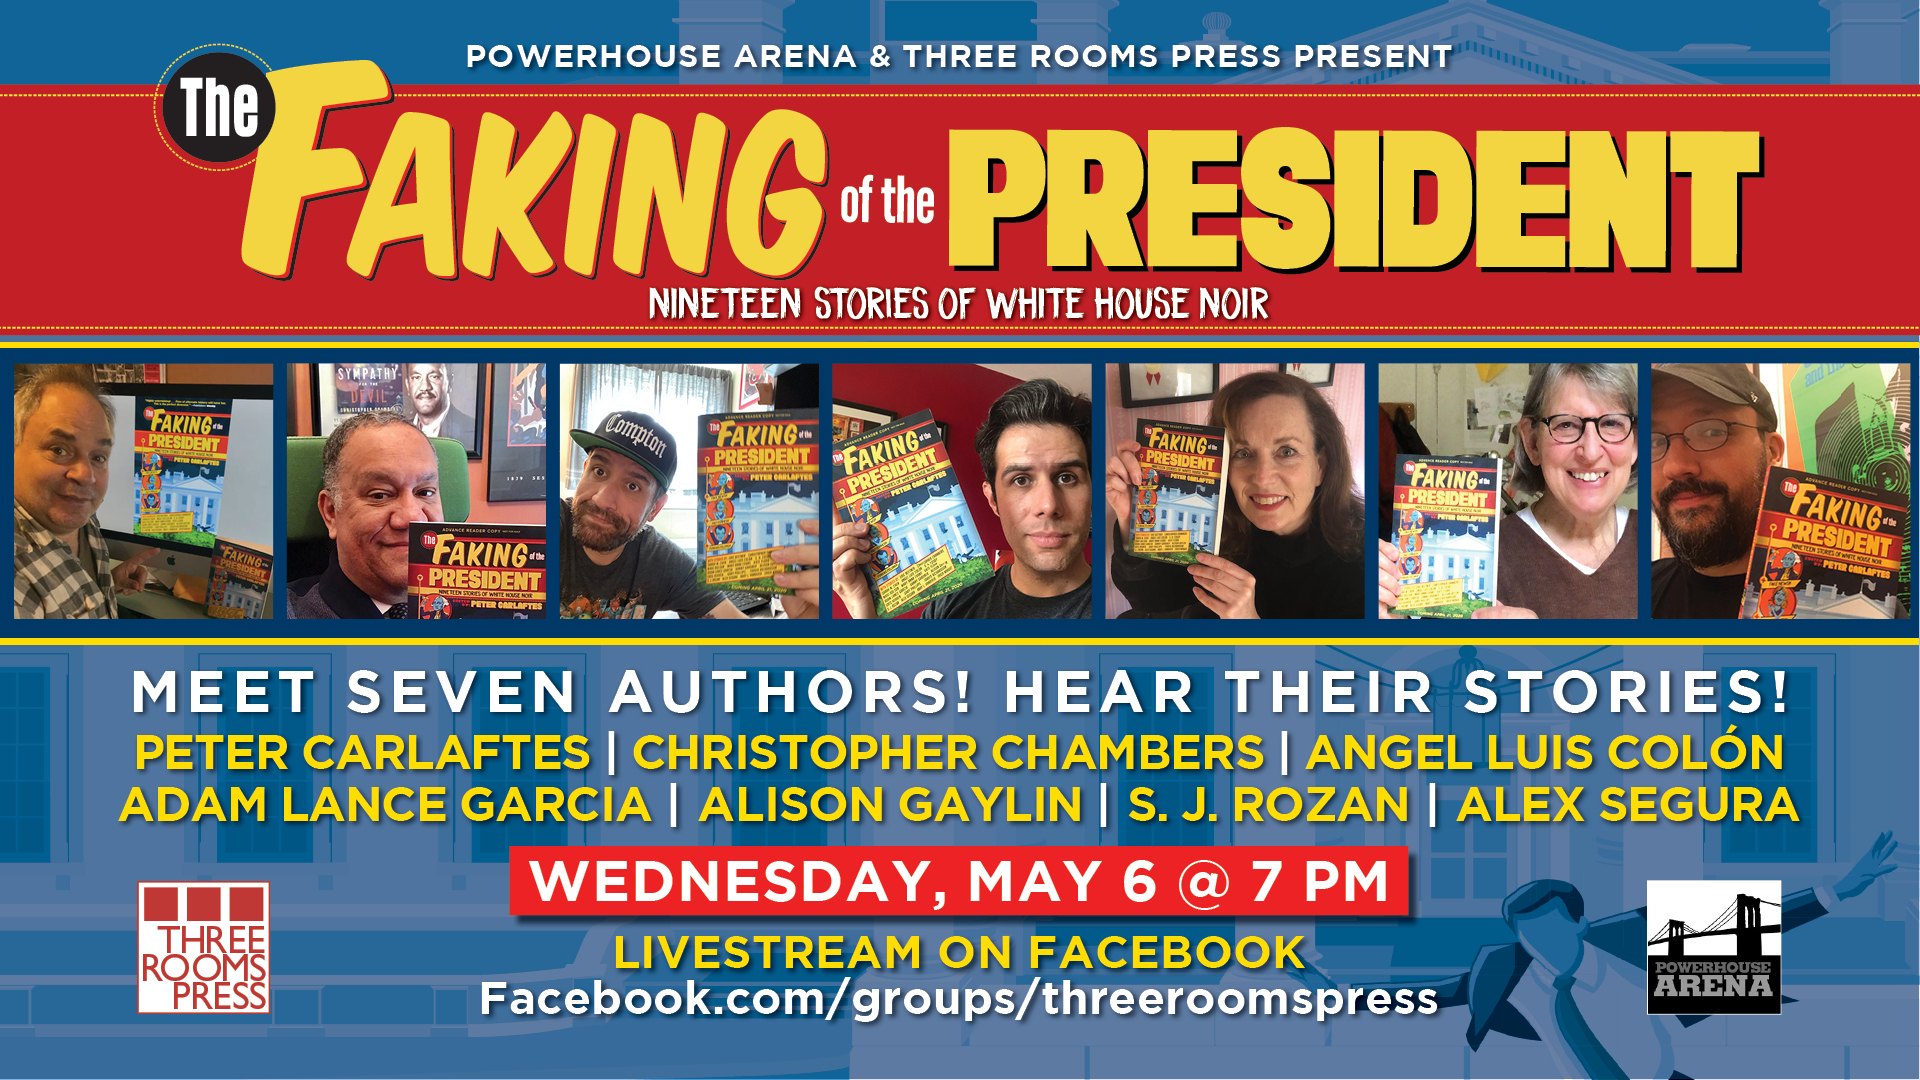 Powerhouse Arena and Three Rooms Press present A Virtual Launch for THE FAKING OF THE PRESIDENT